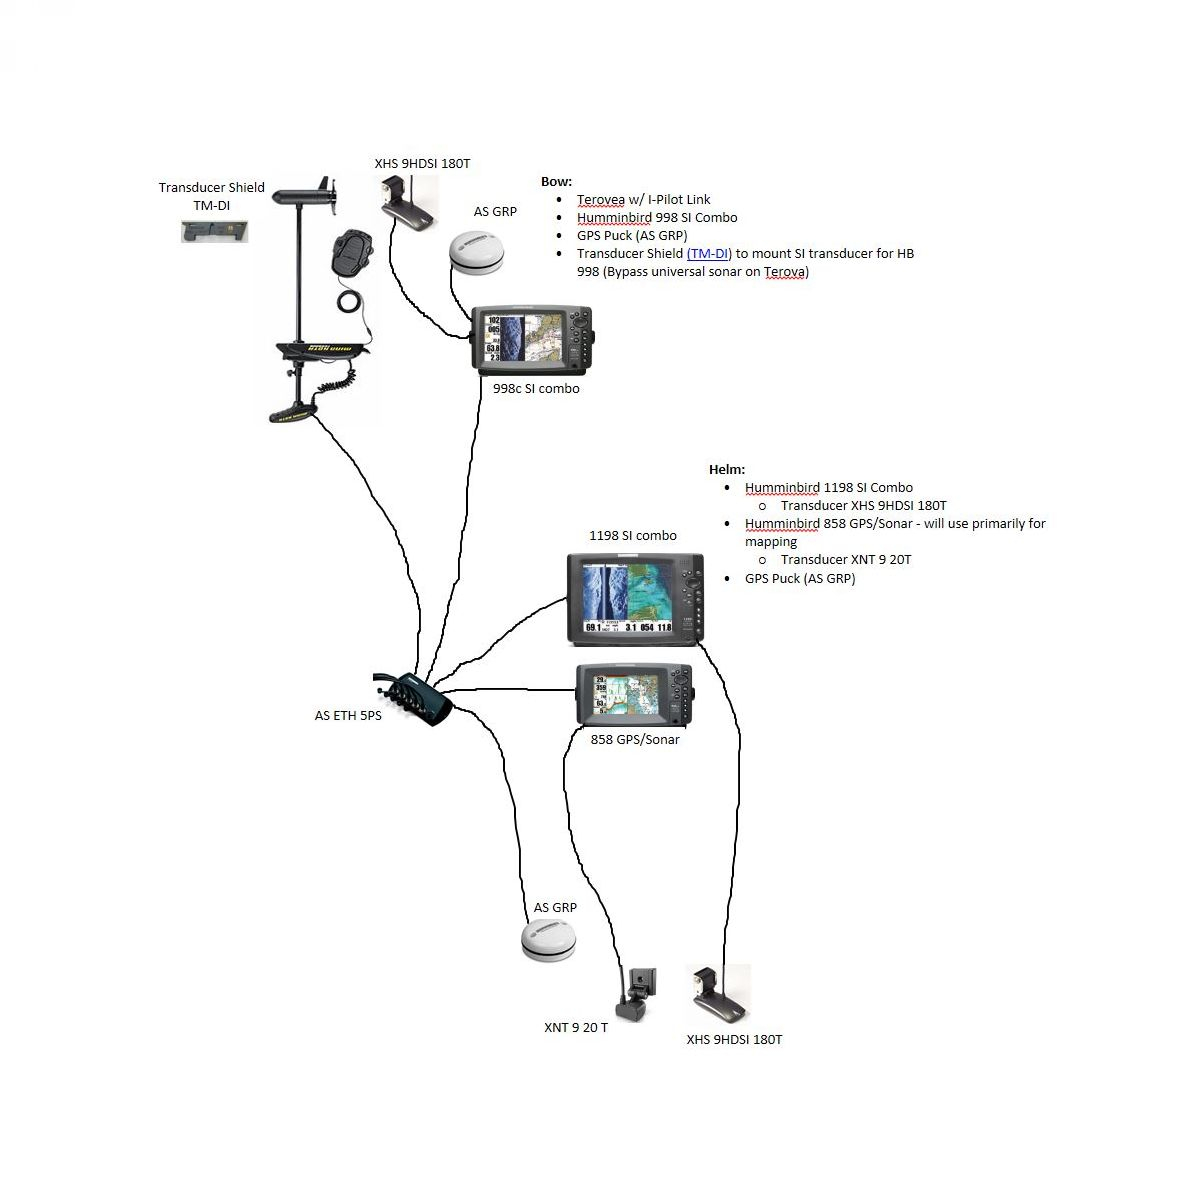 T1 Connectivity Diagram